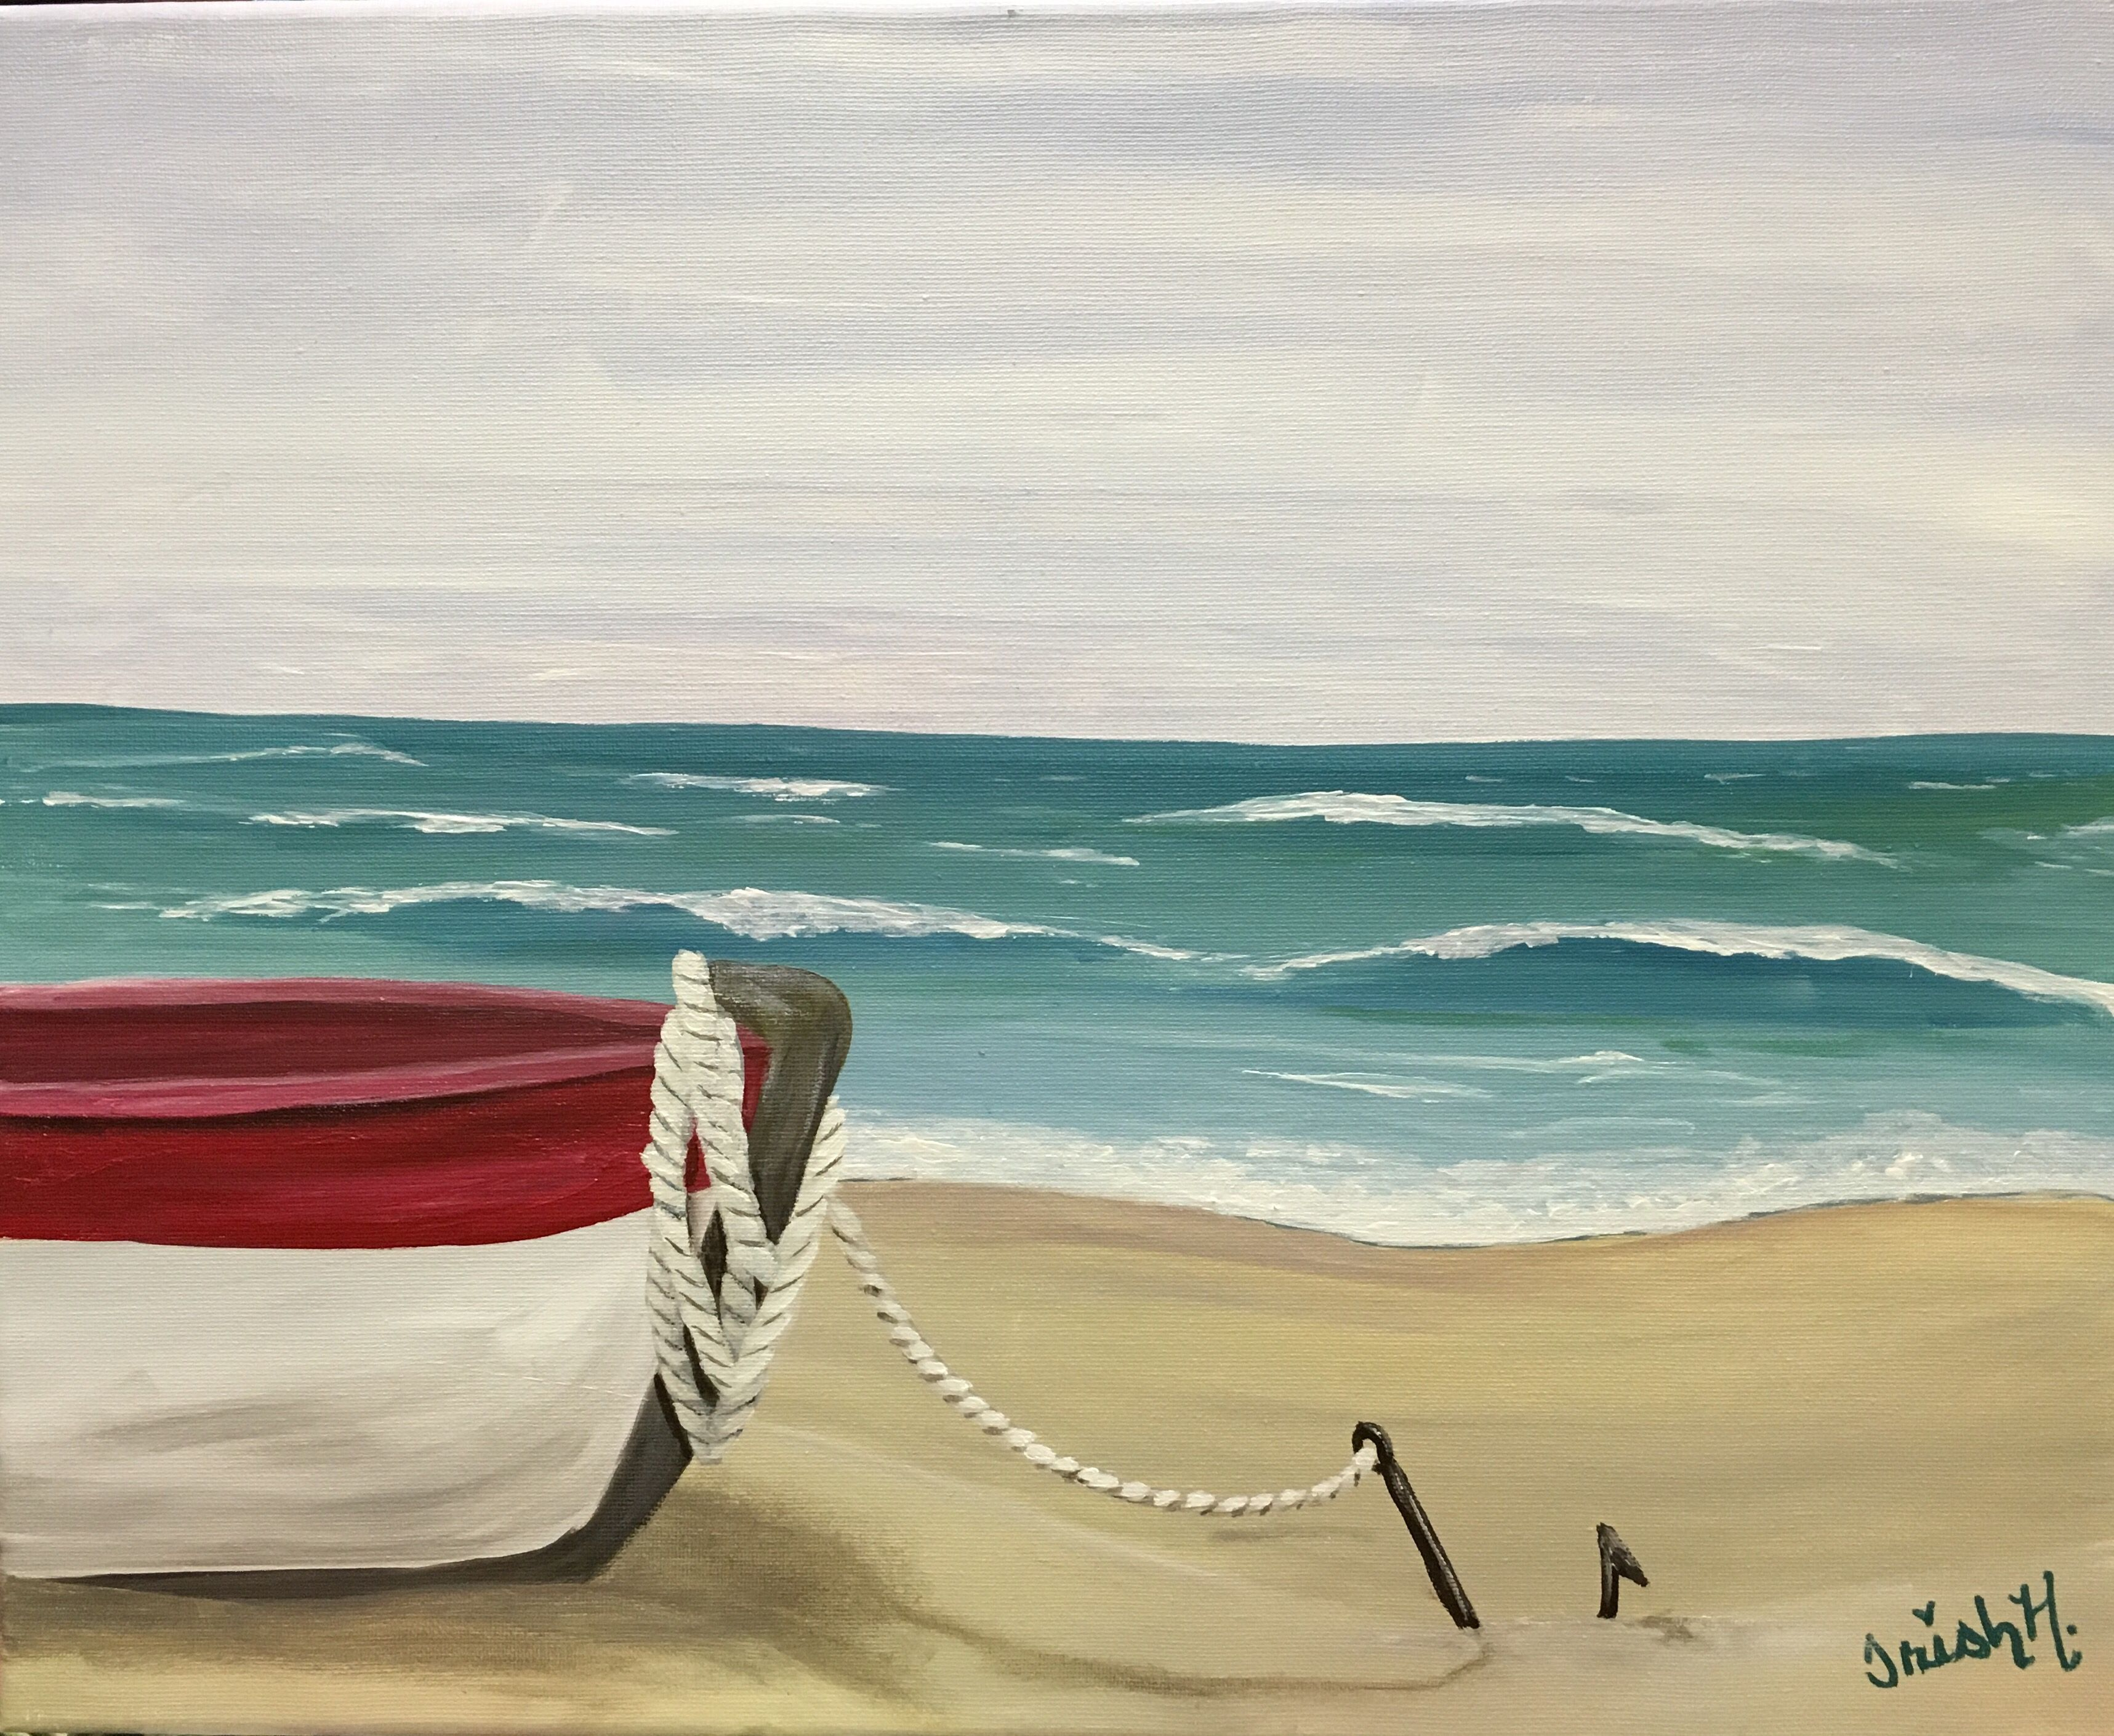 Boat at the beach anchored 16x20 acrylic on canvas